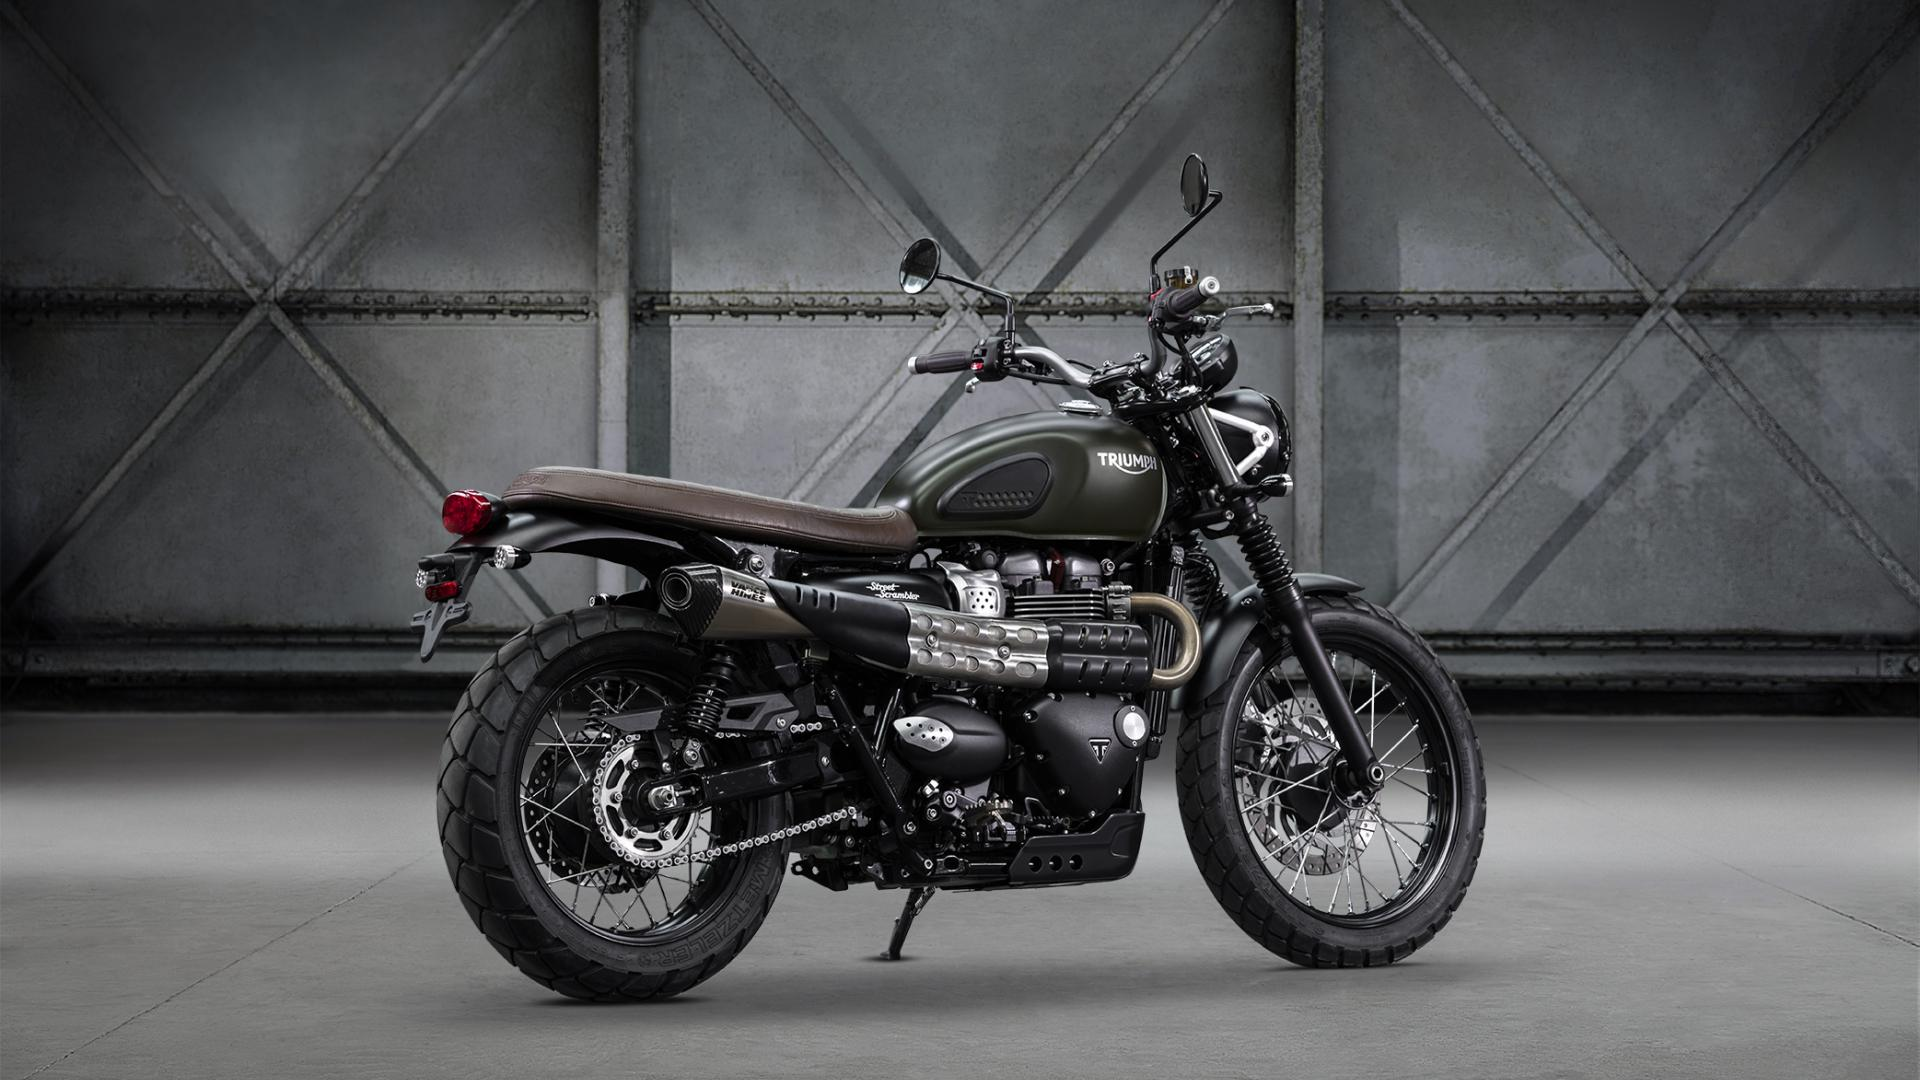 triumph-scrambler-wallpapers-65662-5824099.jpg